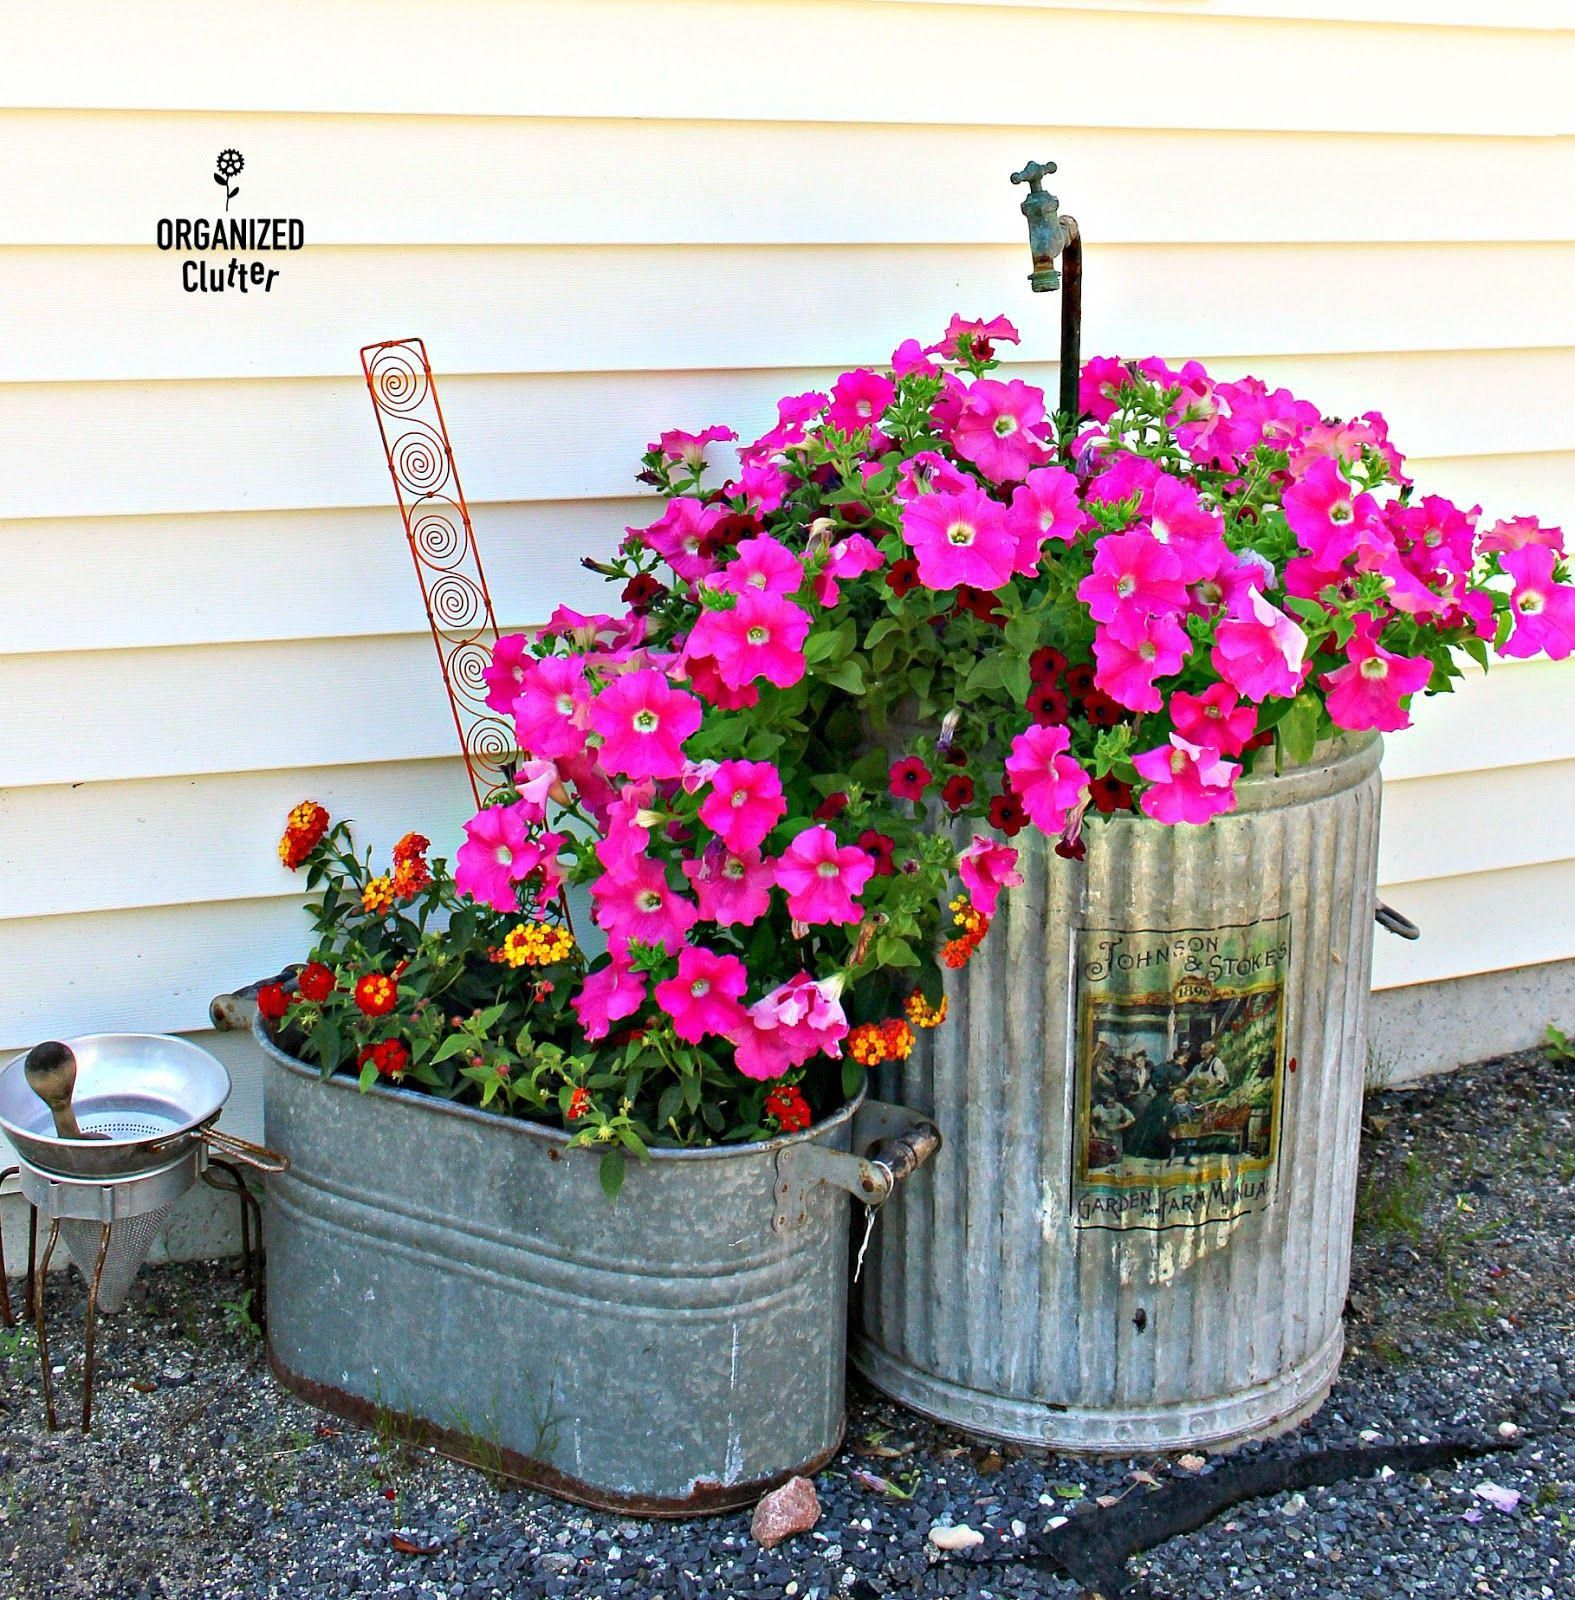 Fun Junk Garden Vignettes From The Yard Of Flowers